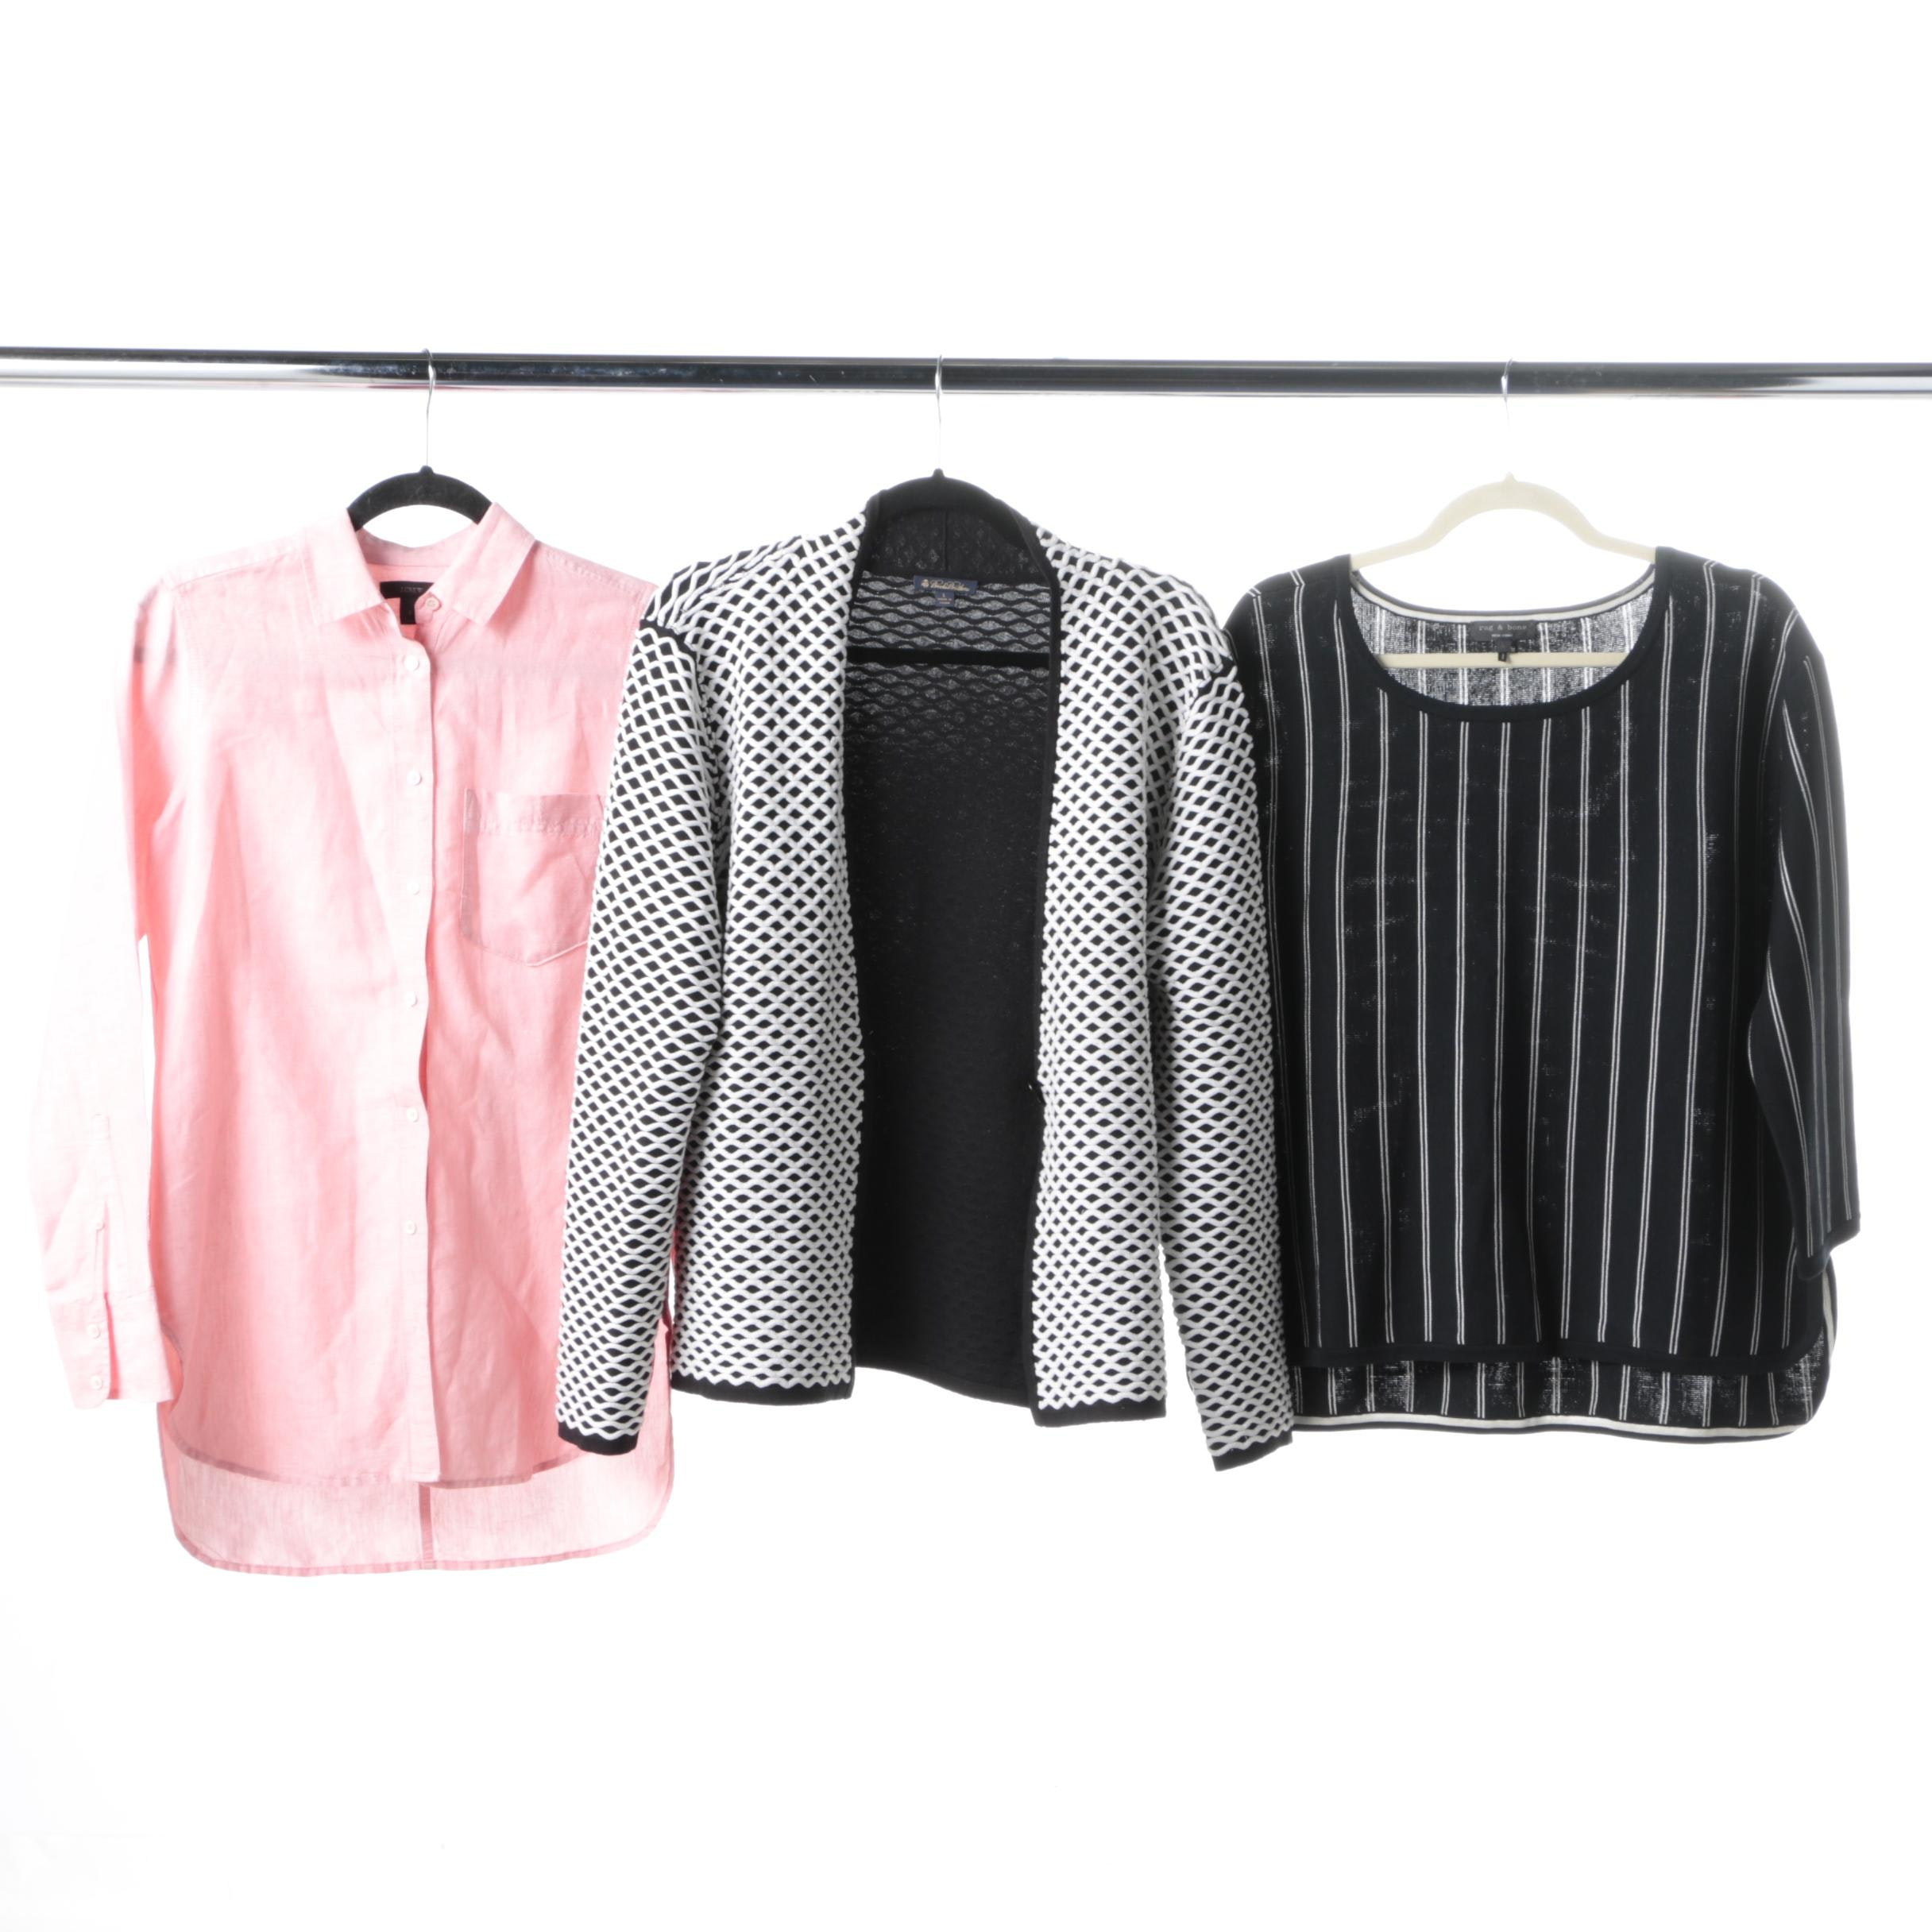 Women's Designer Clothing Including Rag & Bone and Brooks Brothers